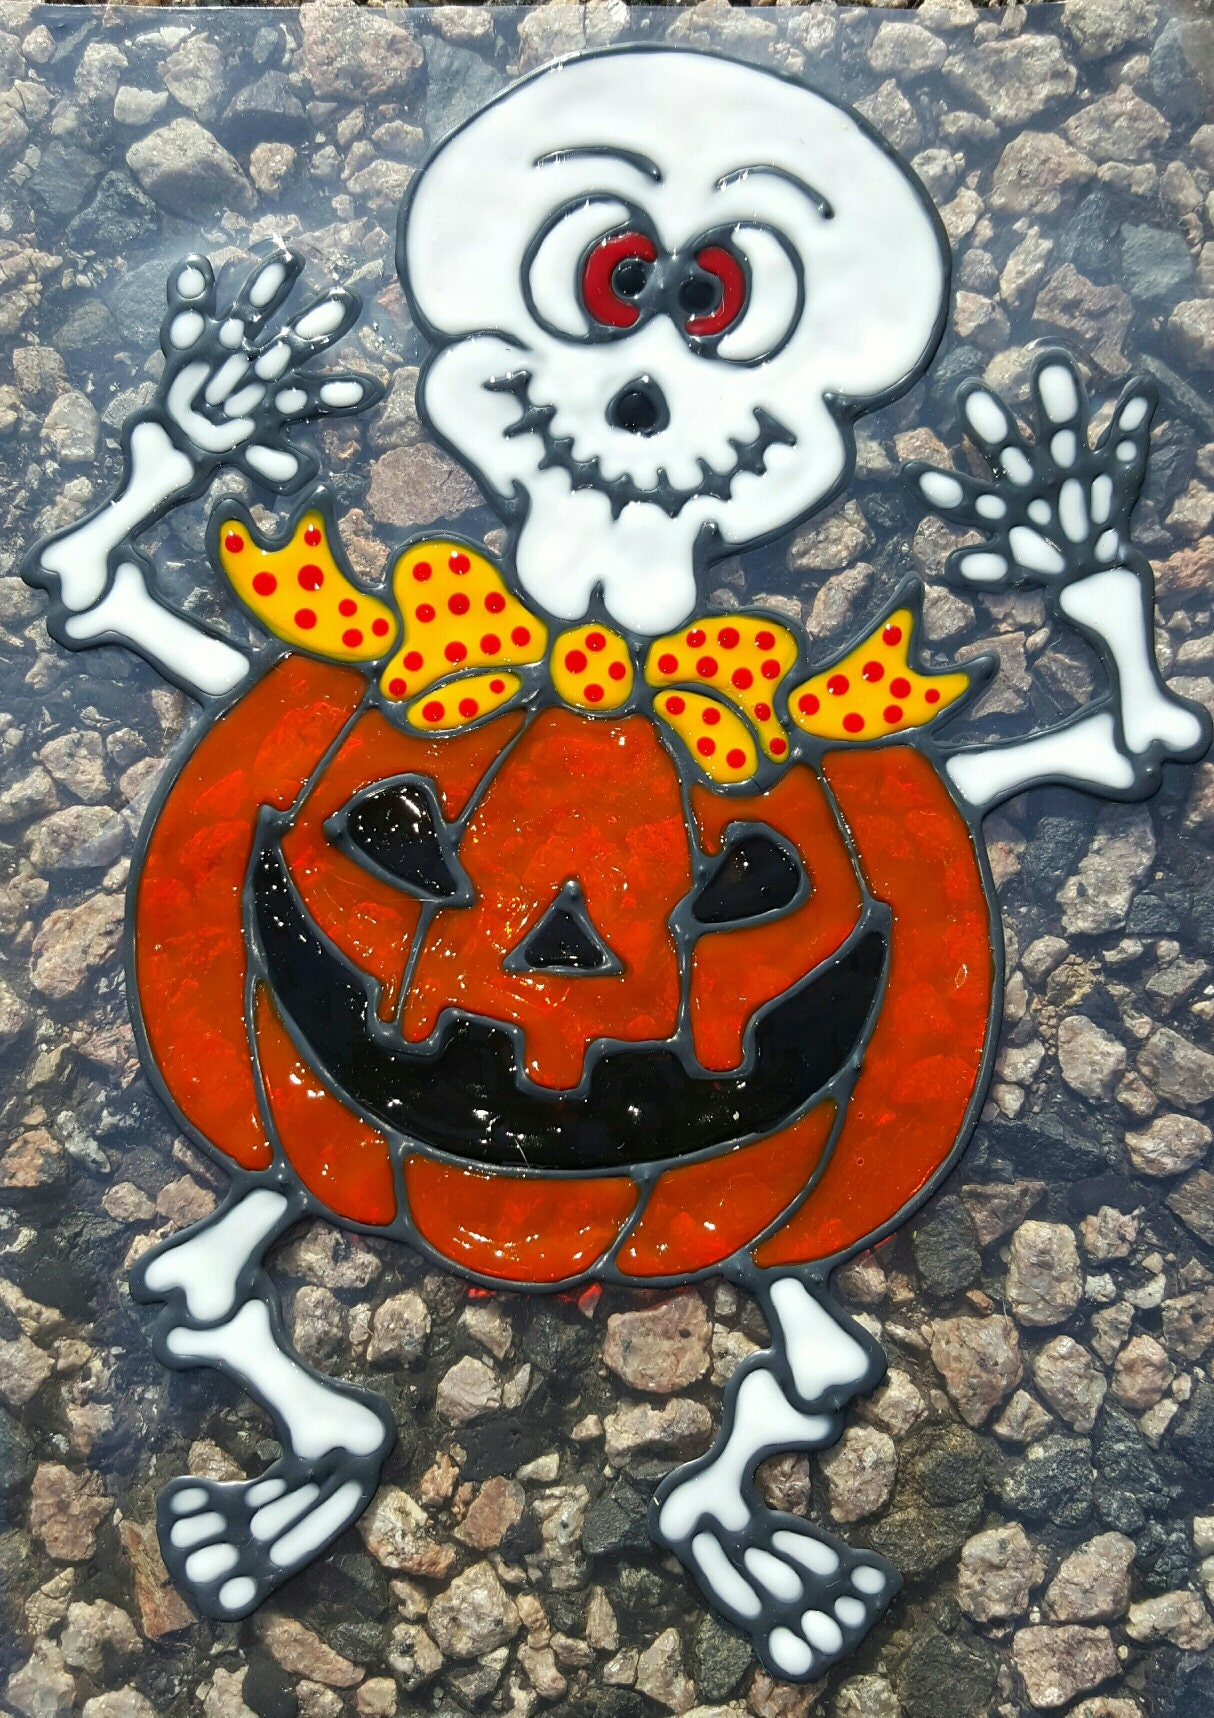 skeleton pumpkin halloween stained glass window cling - Window Clings Halloween